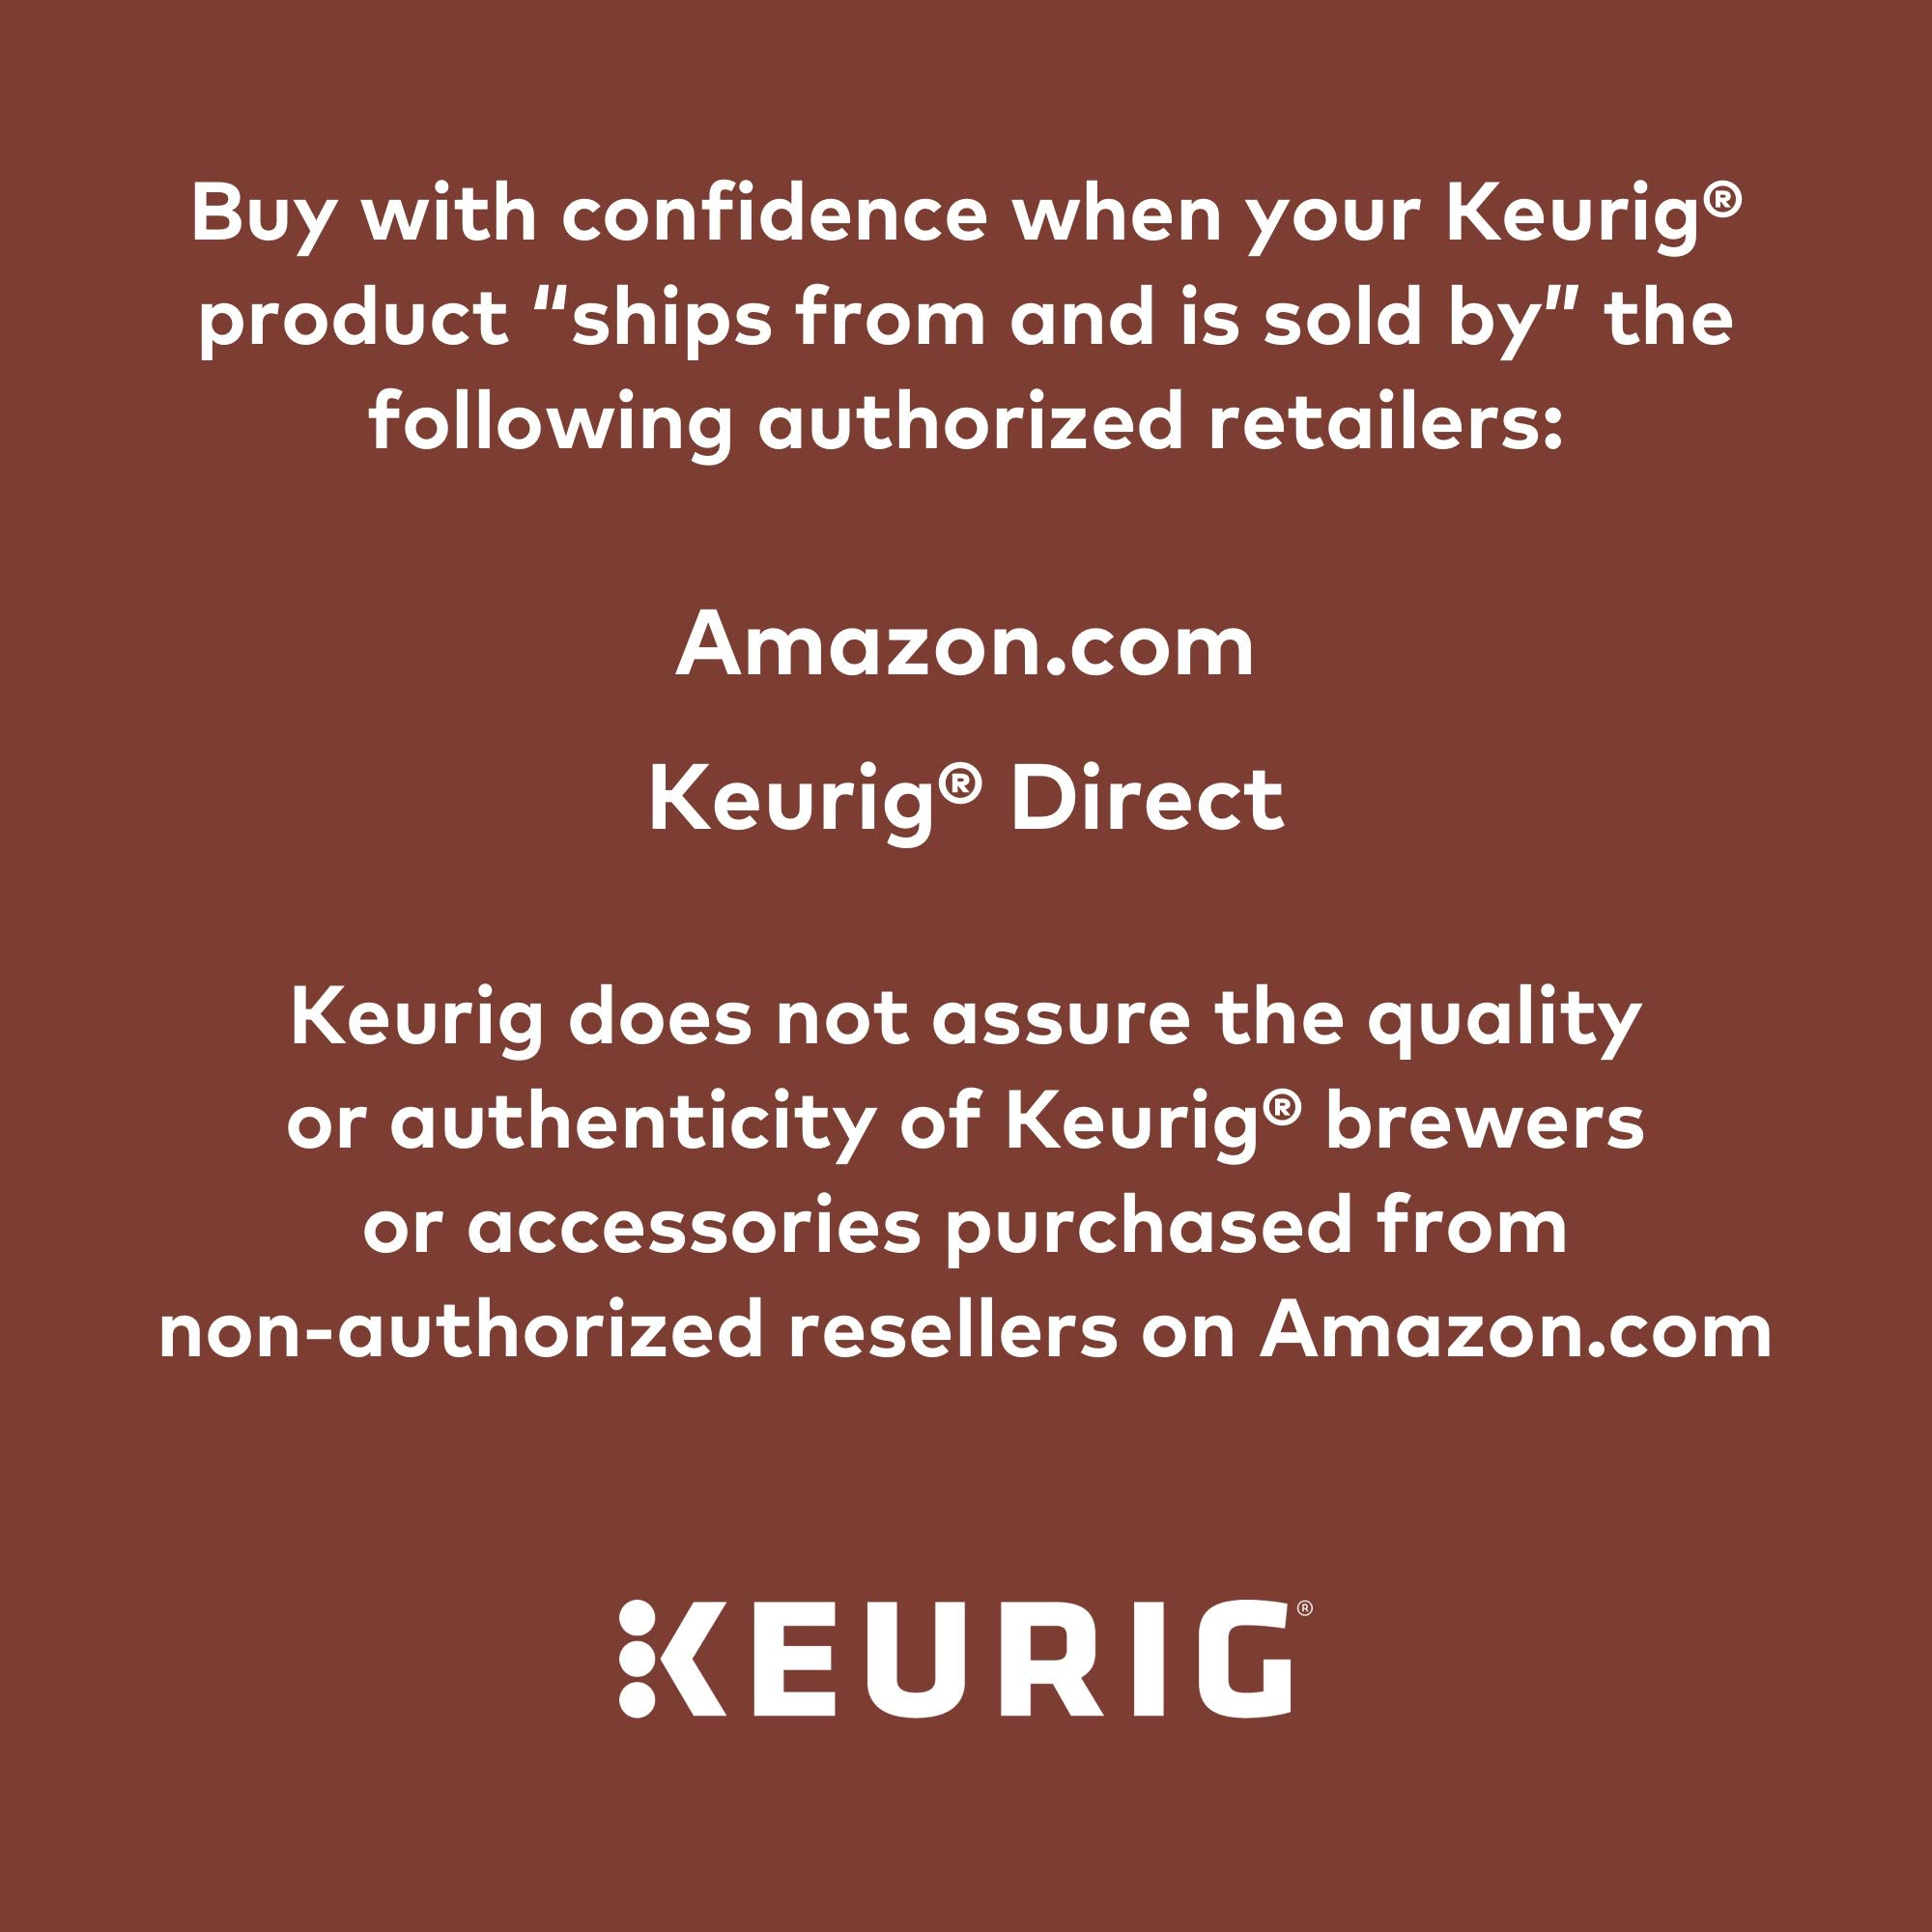 Keurig My K-Cup Universal Reusable Ground Coffee Filter, Compatible with All Keurig K-Cup Pod Coffee Makers (2.0 and 1.0) by Keurig (Image #6)